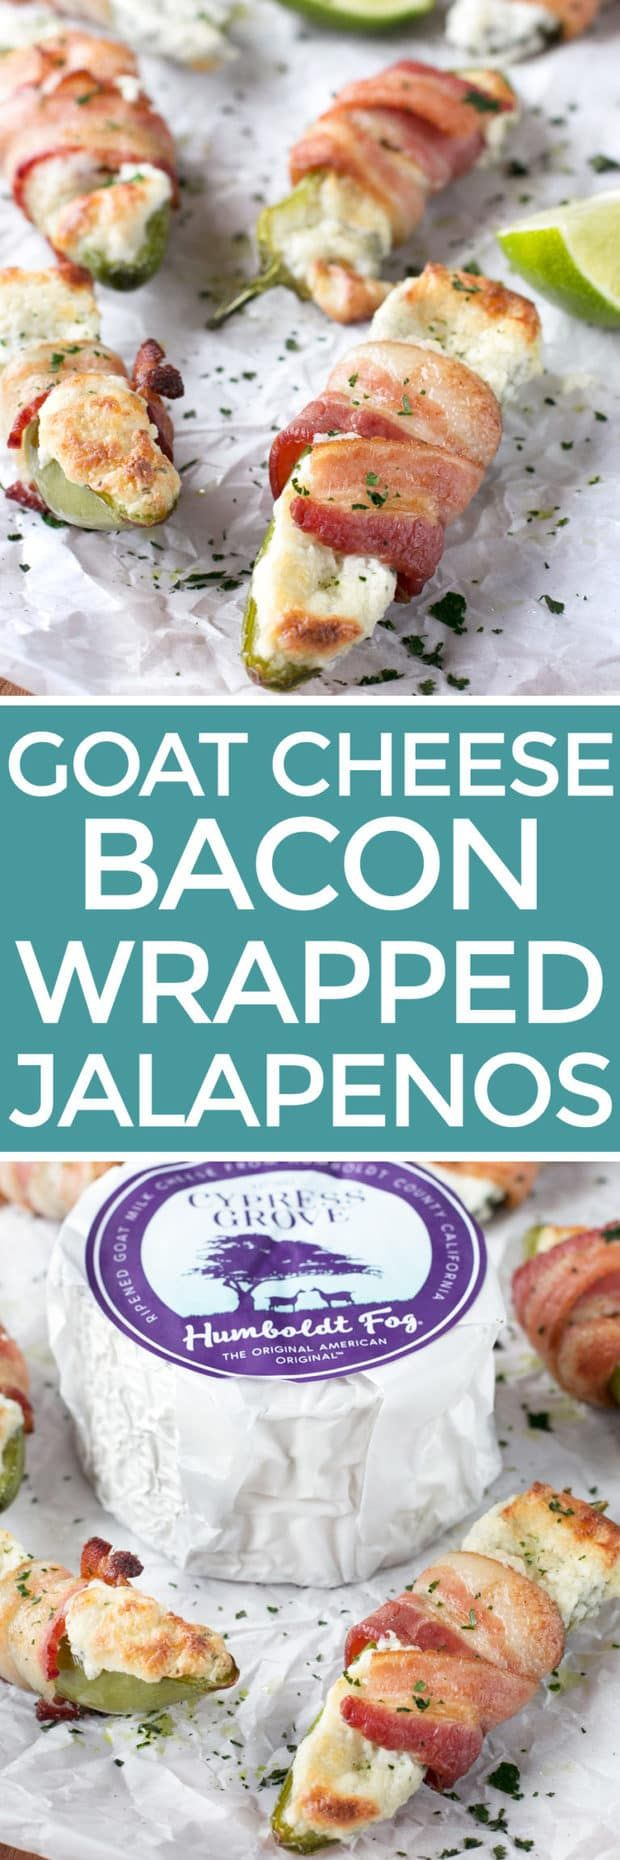 Goat Cheese Stuffed Bacon Wrapped Jalapeños | cakenknife.com #sponsored #goatcheese #tailgating